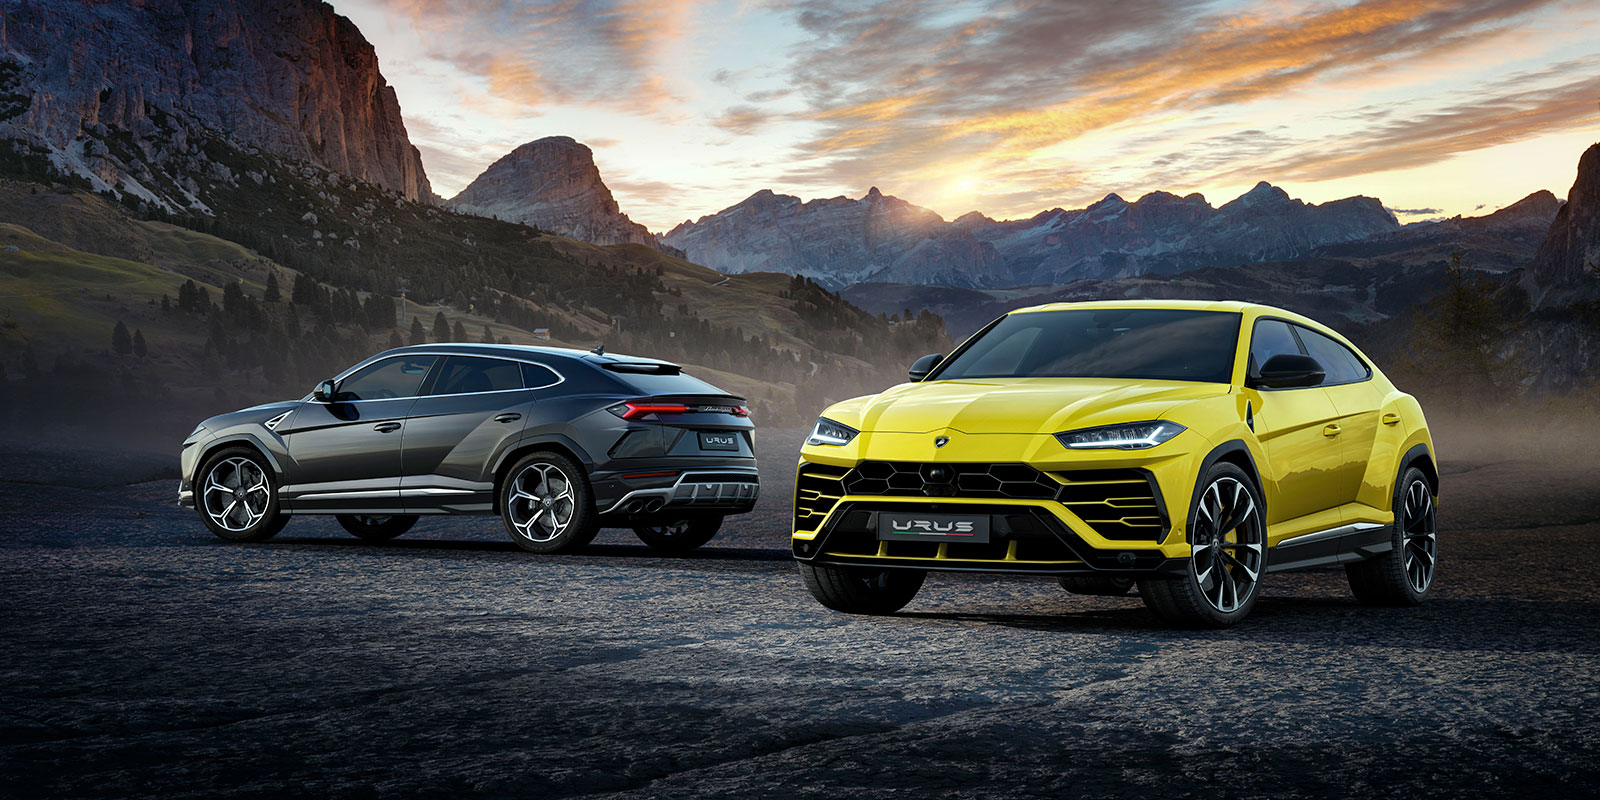 Lamborghini Urus - The World's First Super Sport Utility Vehicle image 4